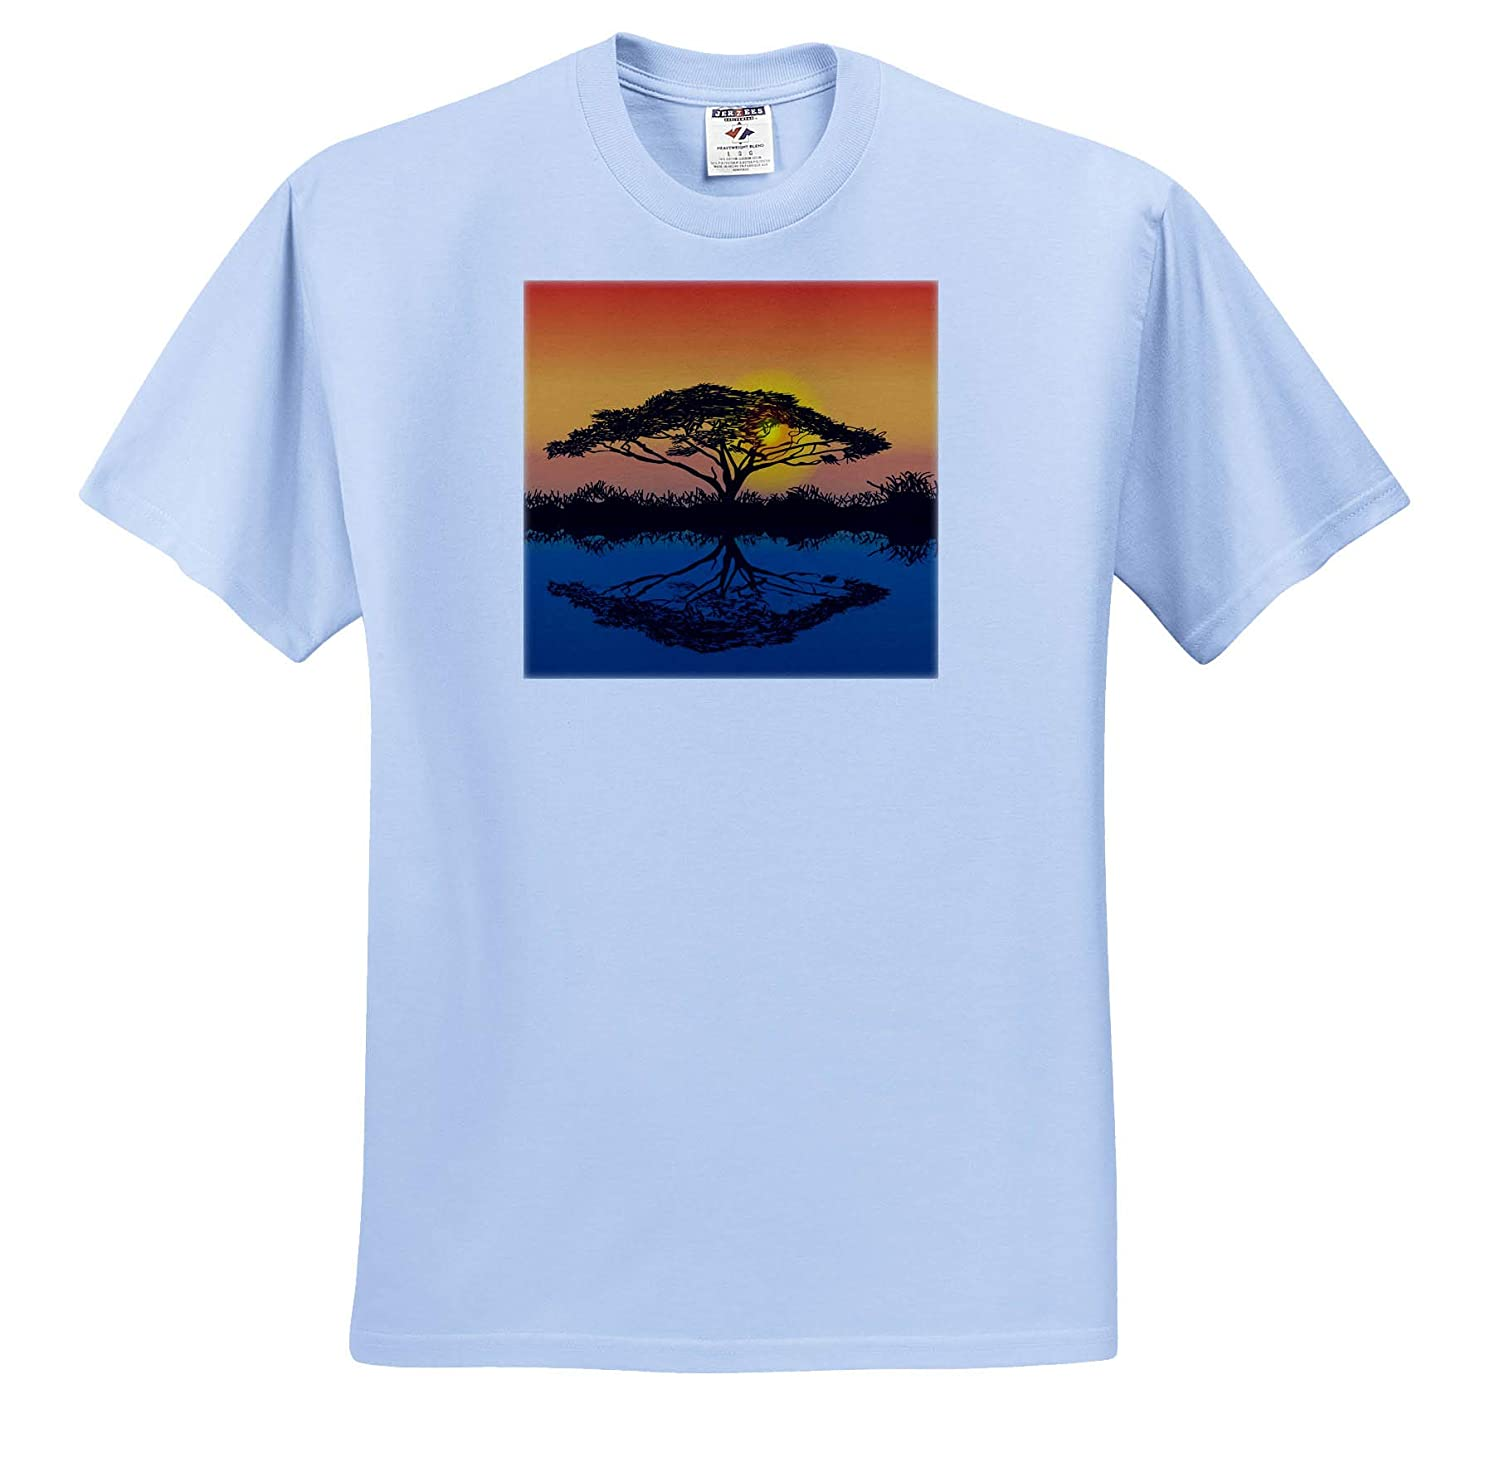 3dRose Sven Herkenrath Nature T-Shirts Beautiful Image of a Tree at The River Trendy Work